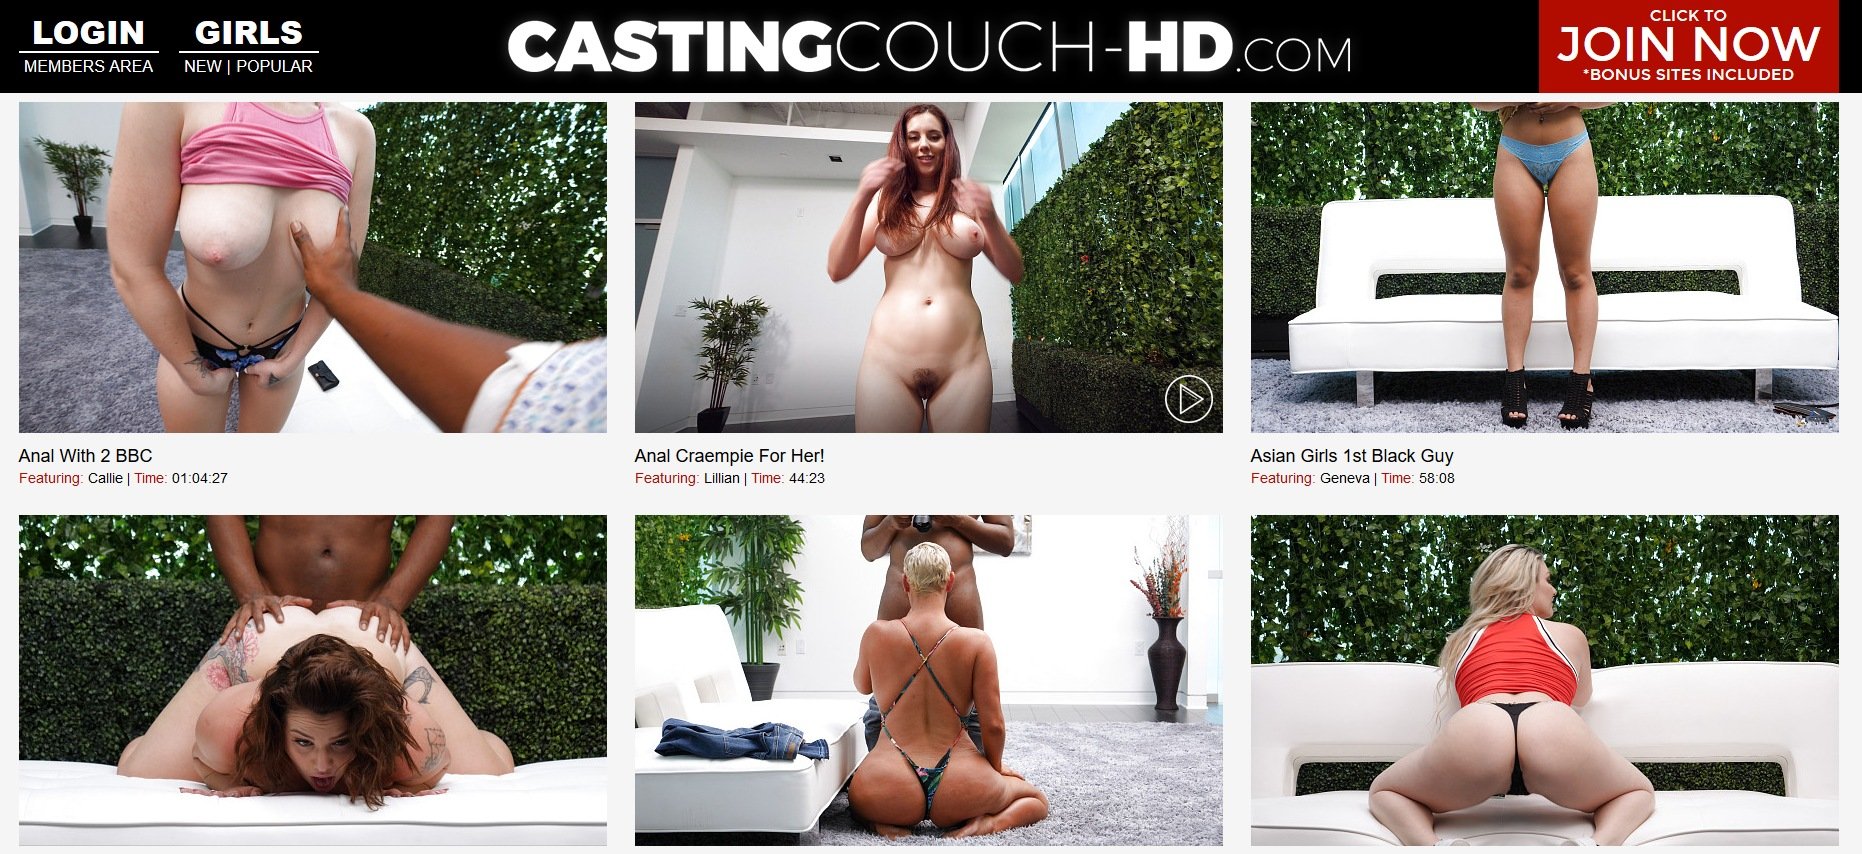 https://piratepass.pw/wp-content/uploads/2019/08/castingcouch-hd.com-yHdArbaQbfFaffrAZykVmSqX.jpg pass